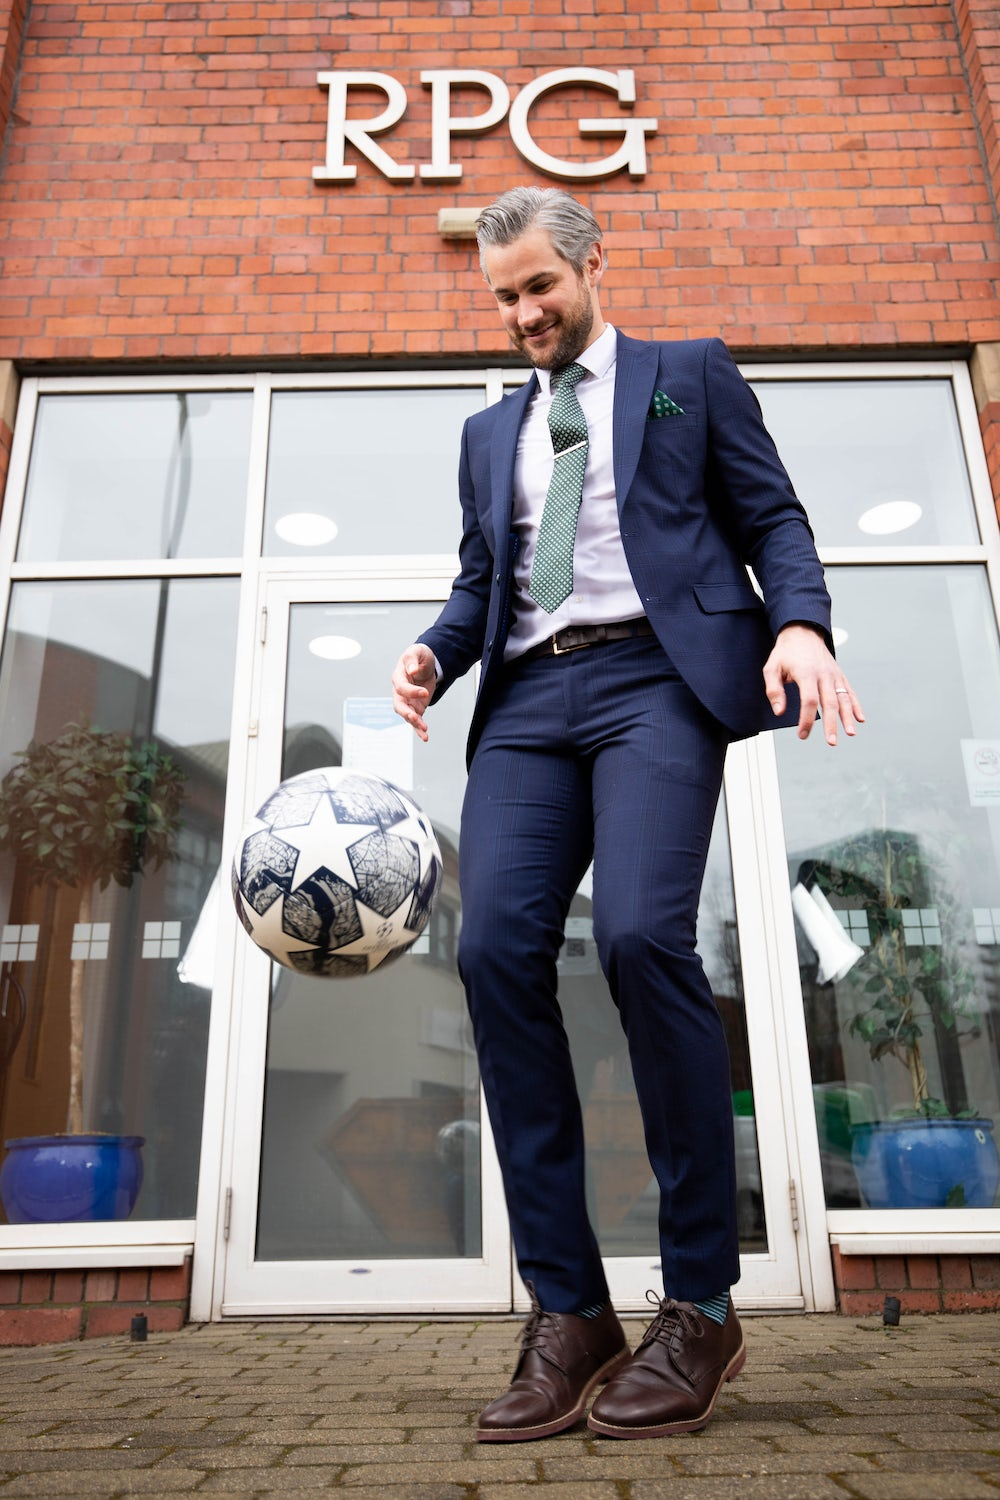 Former professional footballer, Jamie Reed, is kicking off the next stage of his financial planning career with RPG Chartered Financial Planners